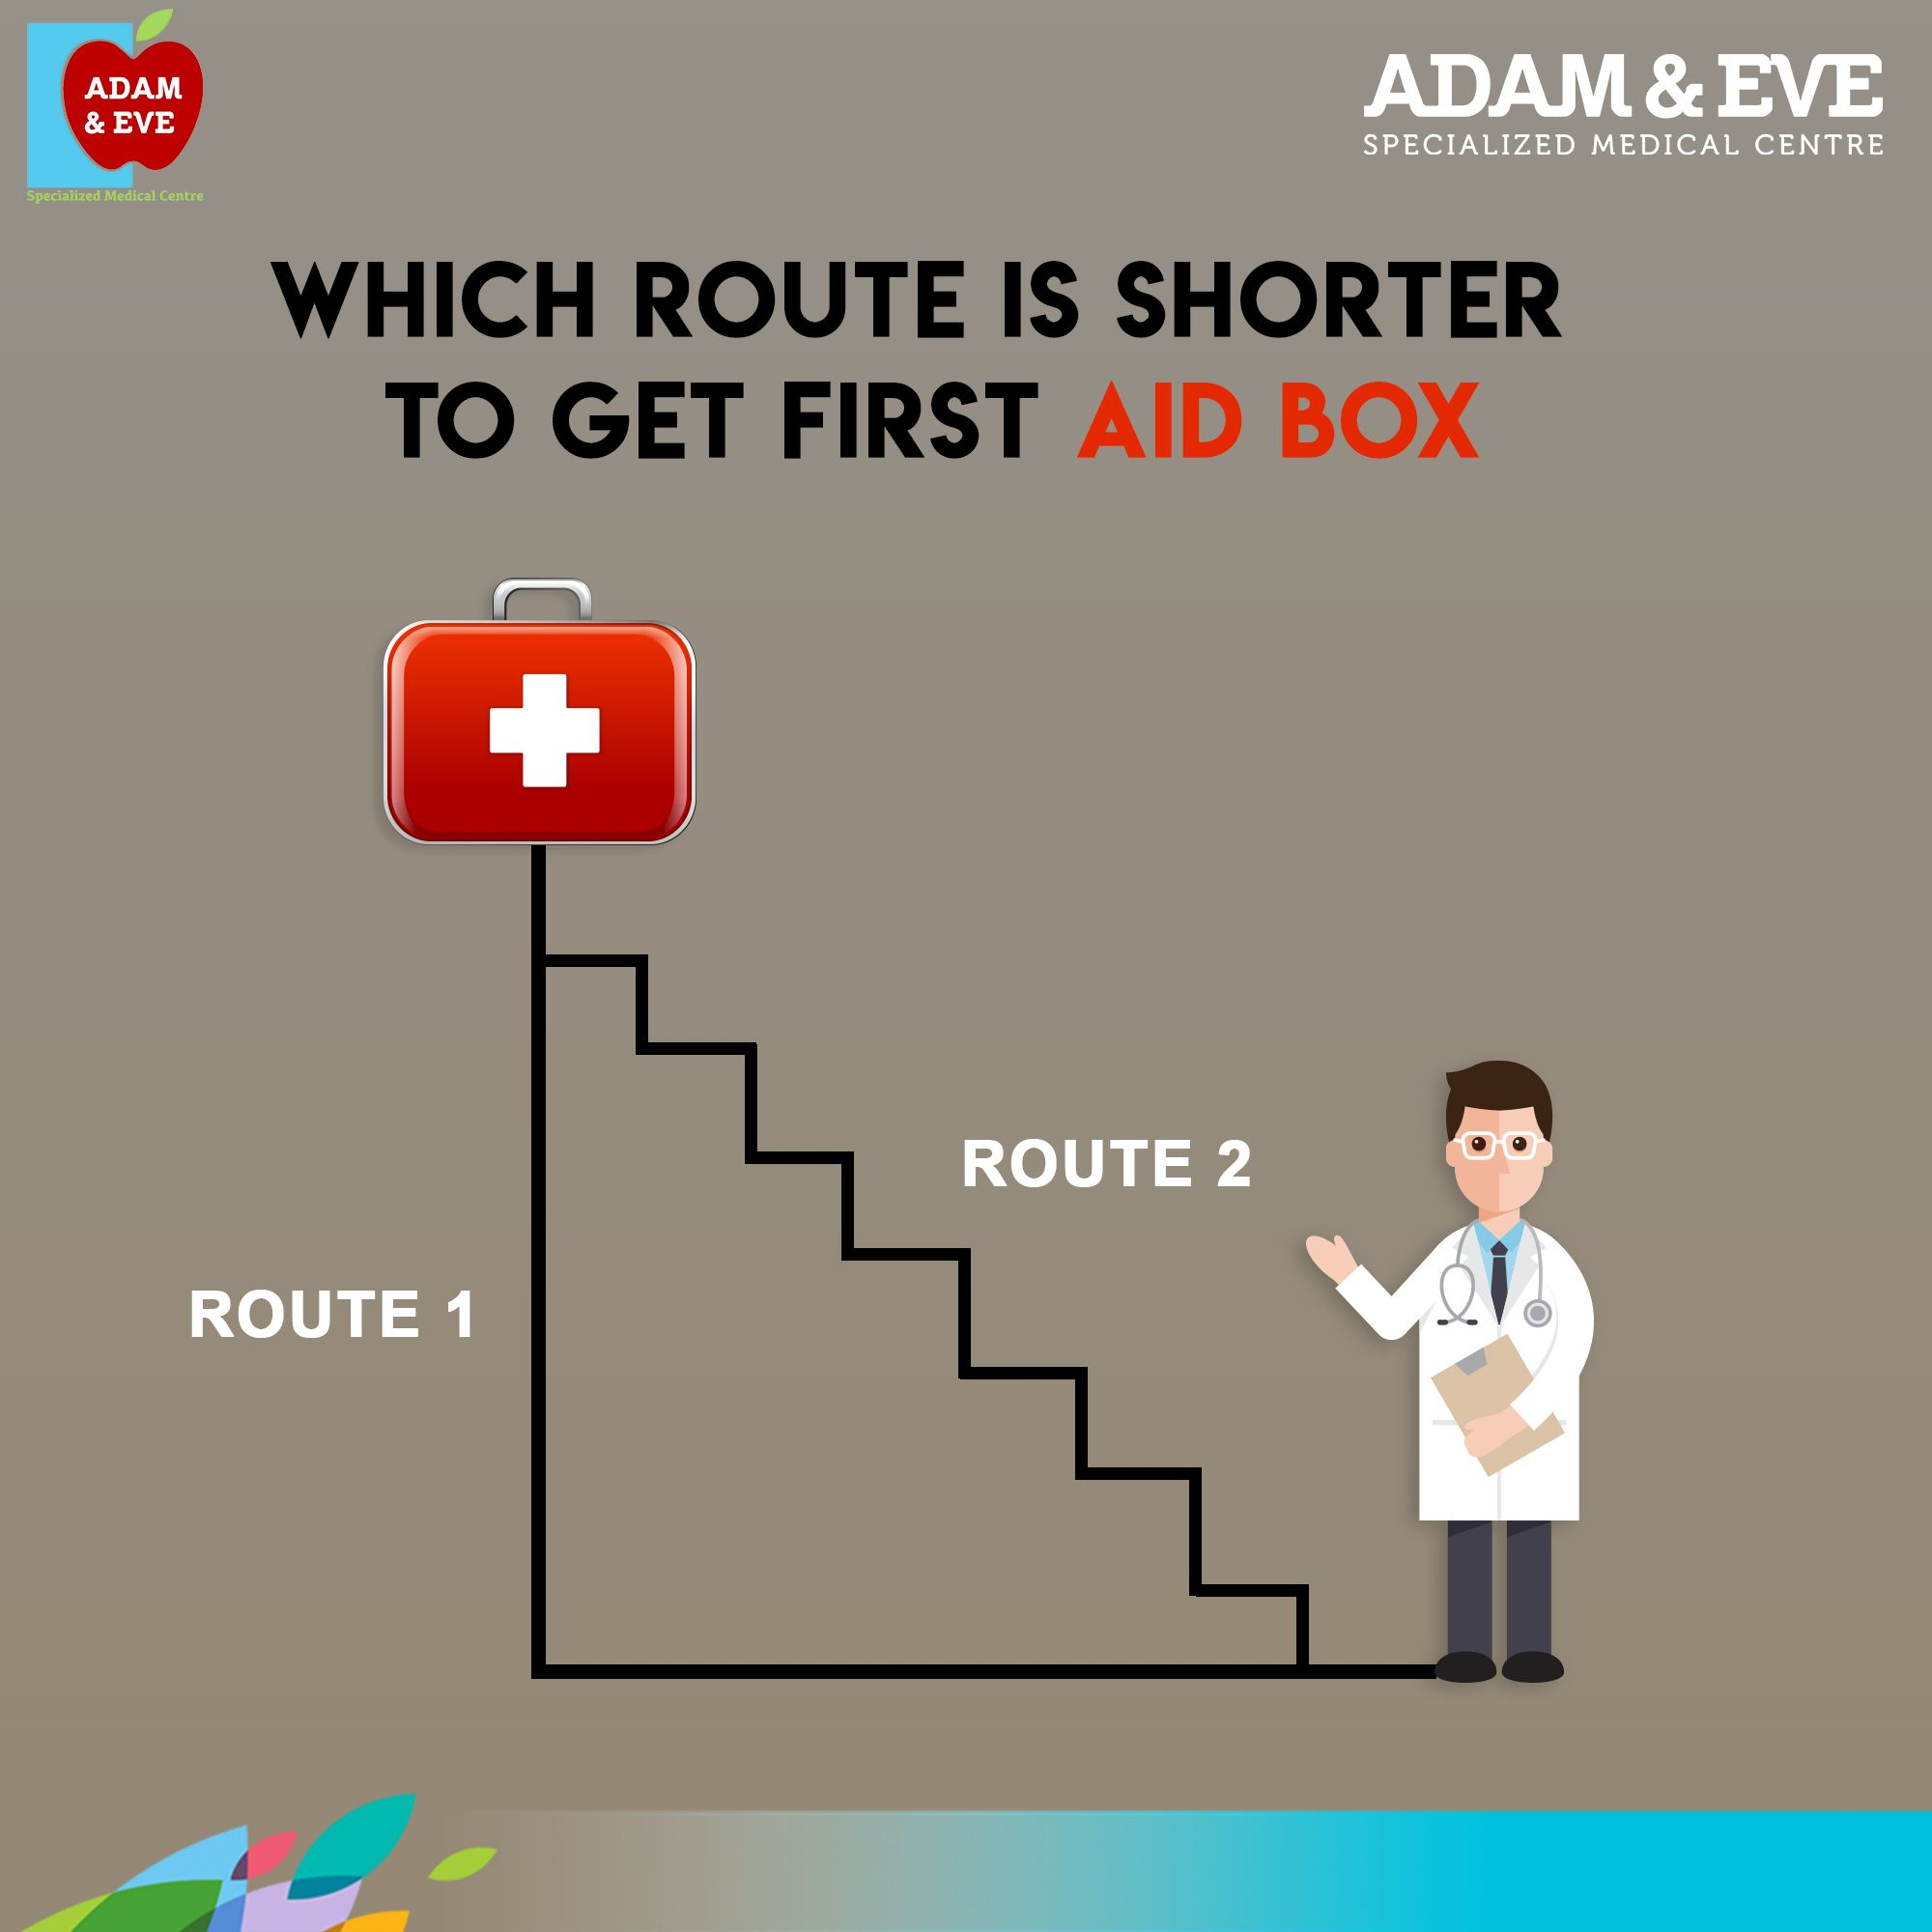 Pin by Adam & Eve Specialized Medical Centre UAE on Health